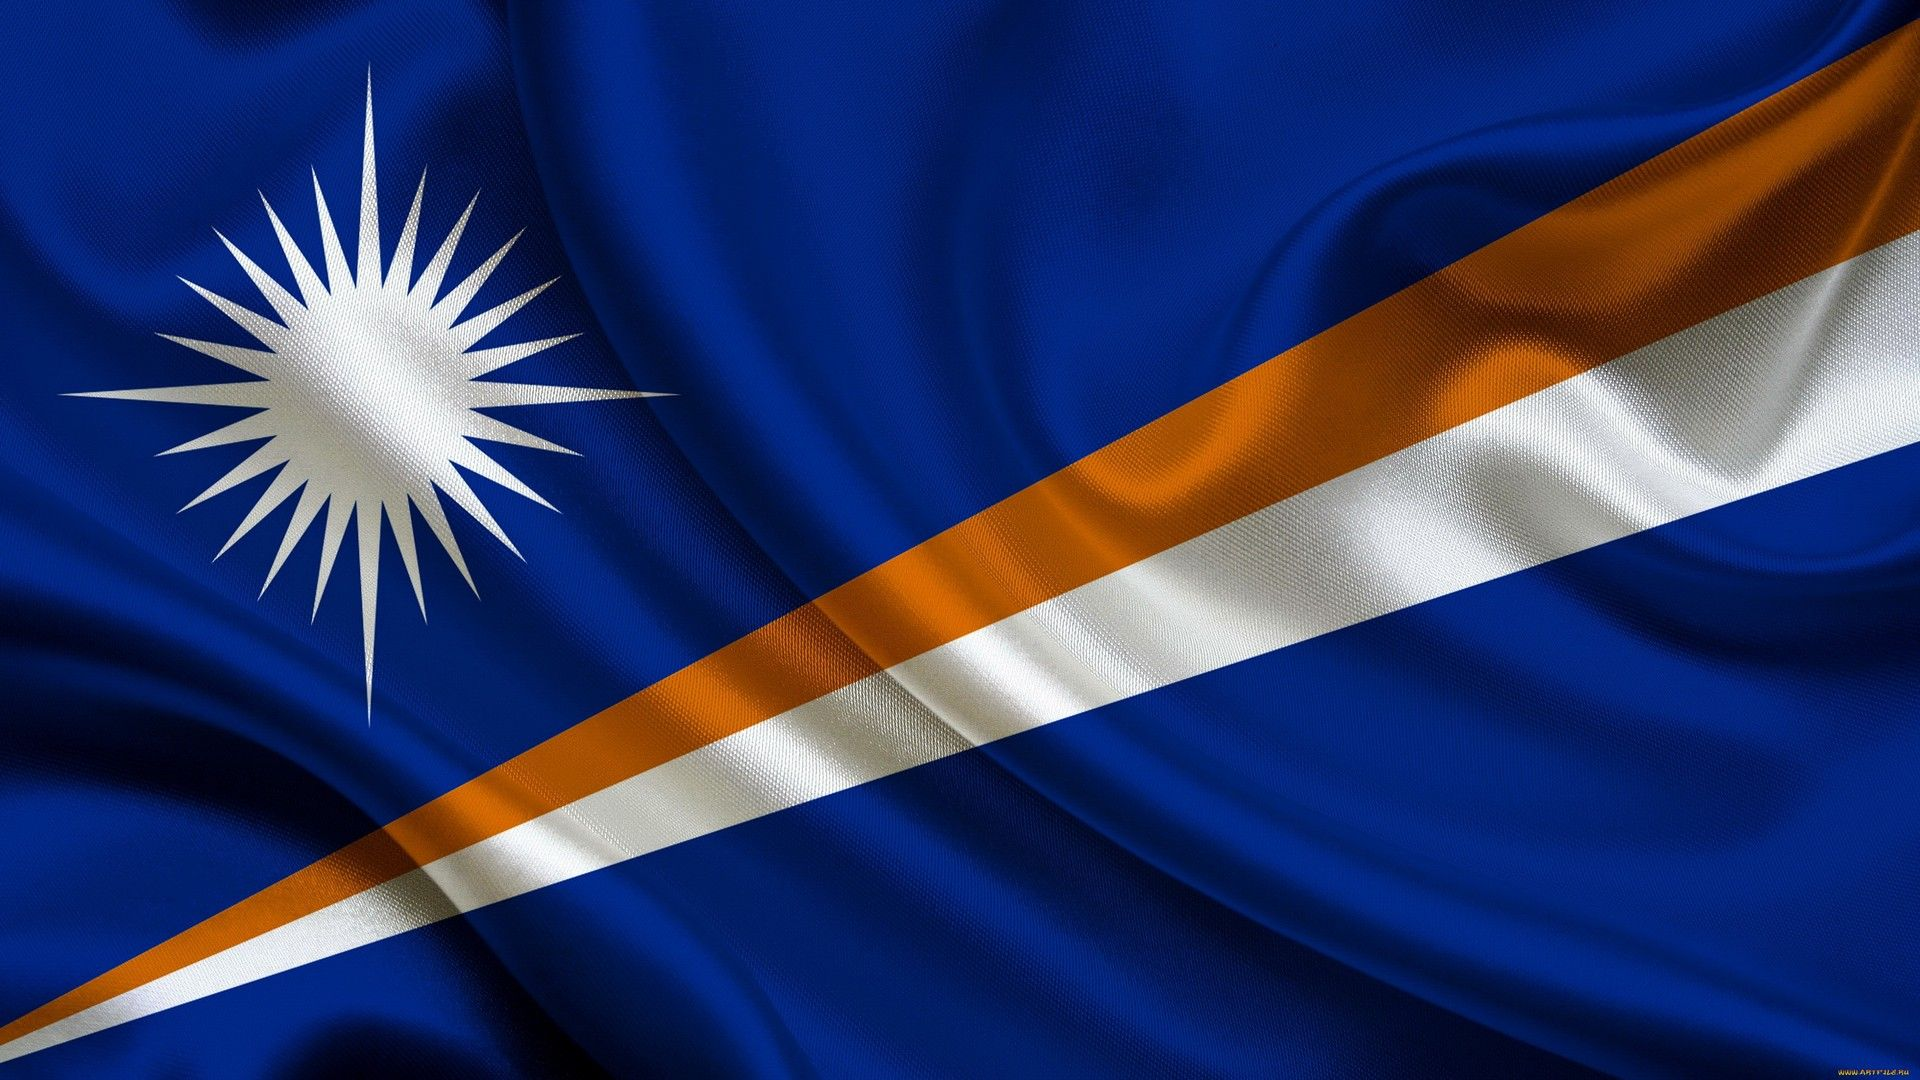 The Flag Of The Marshall Islands Wallpaper Island Wallpaper Wallpaper Island